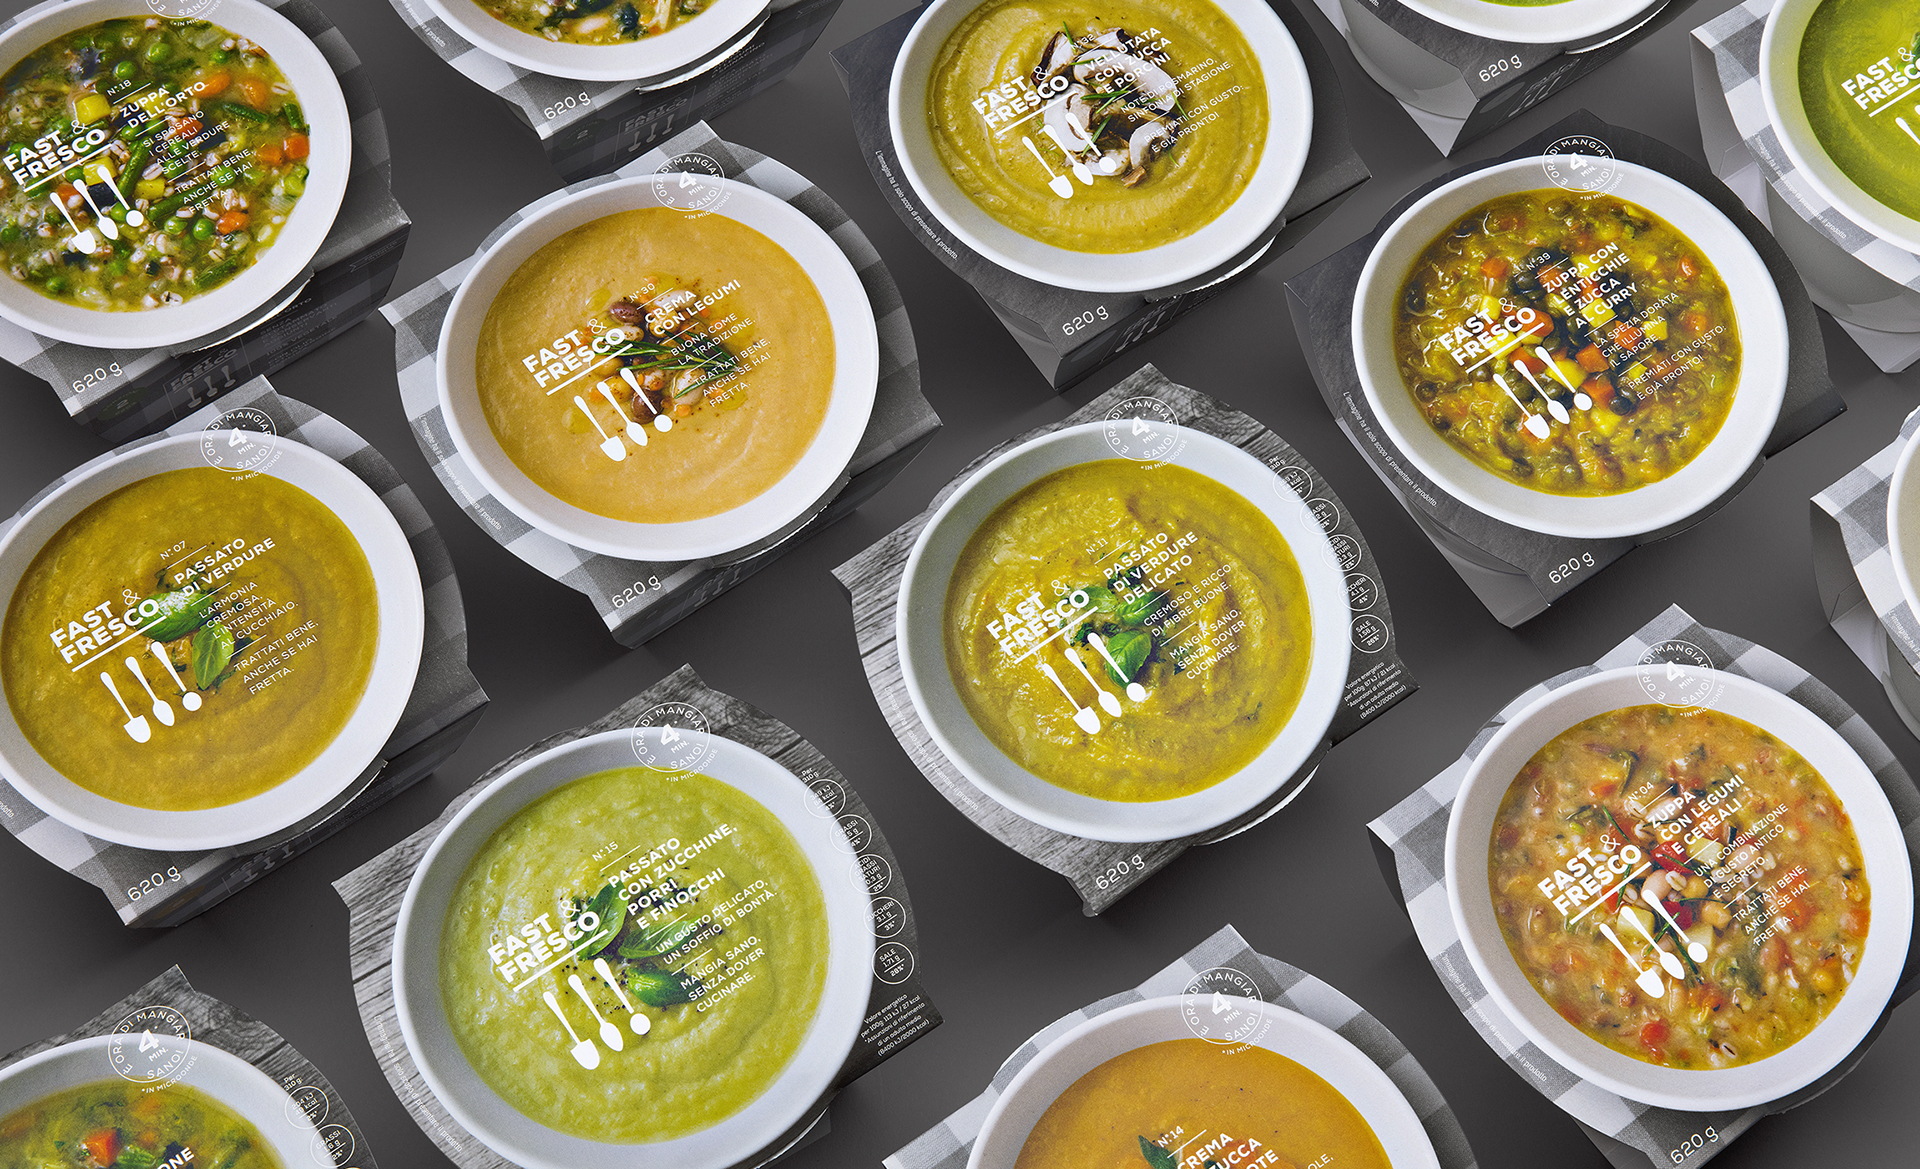 Fast Fresco soup food packaging design CPG branding by Auge Design in Italy